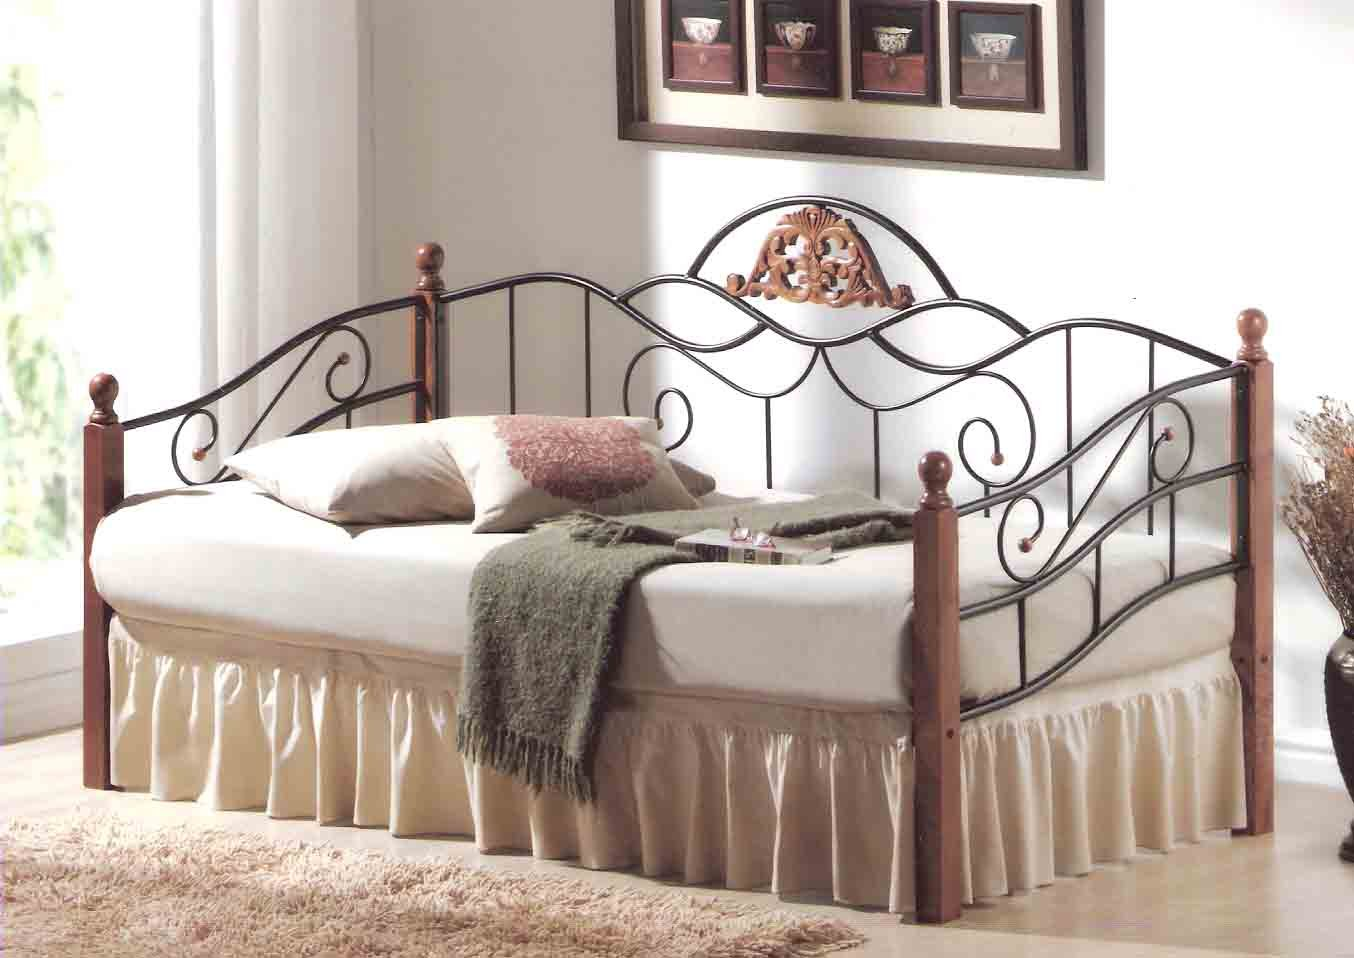 Lovely Metal Bed,Bedroom Set,Bedroom Furniture,Furniture,Bedroom,Metal Bedroom Set,Metal  Bedroom,Home Furniture,Bedroom Set   Buy Bedroom Set,Metal Bedroom,Bedroom  ...